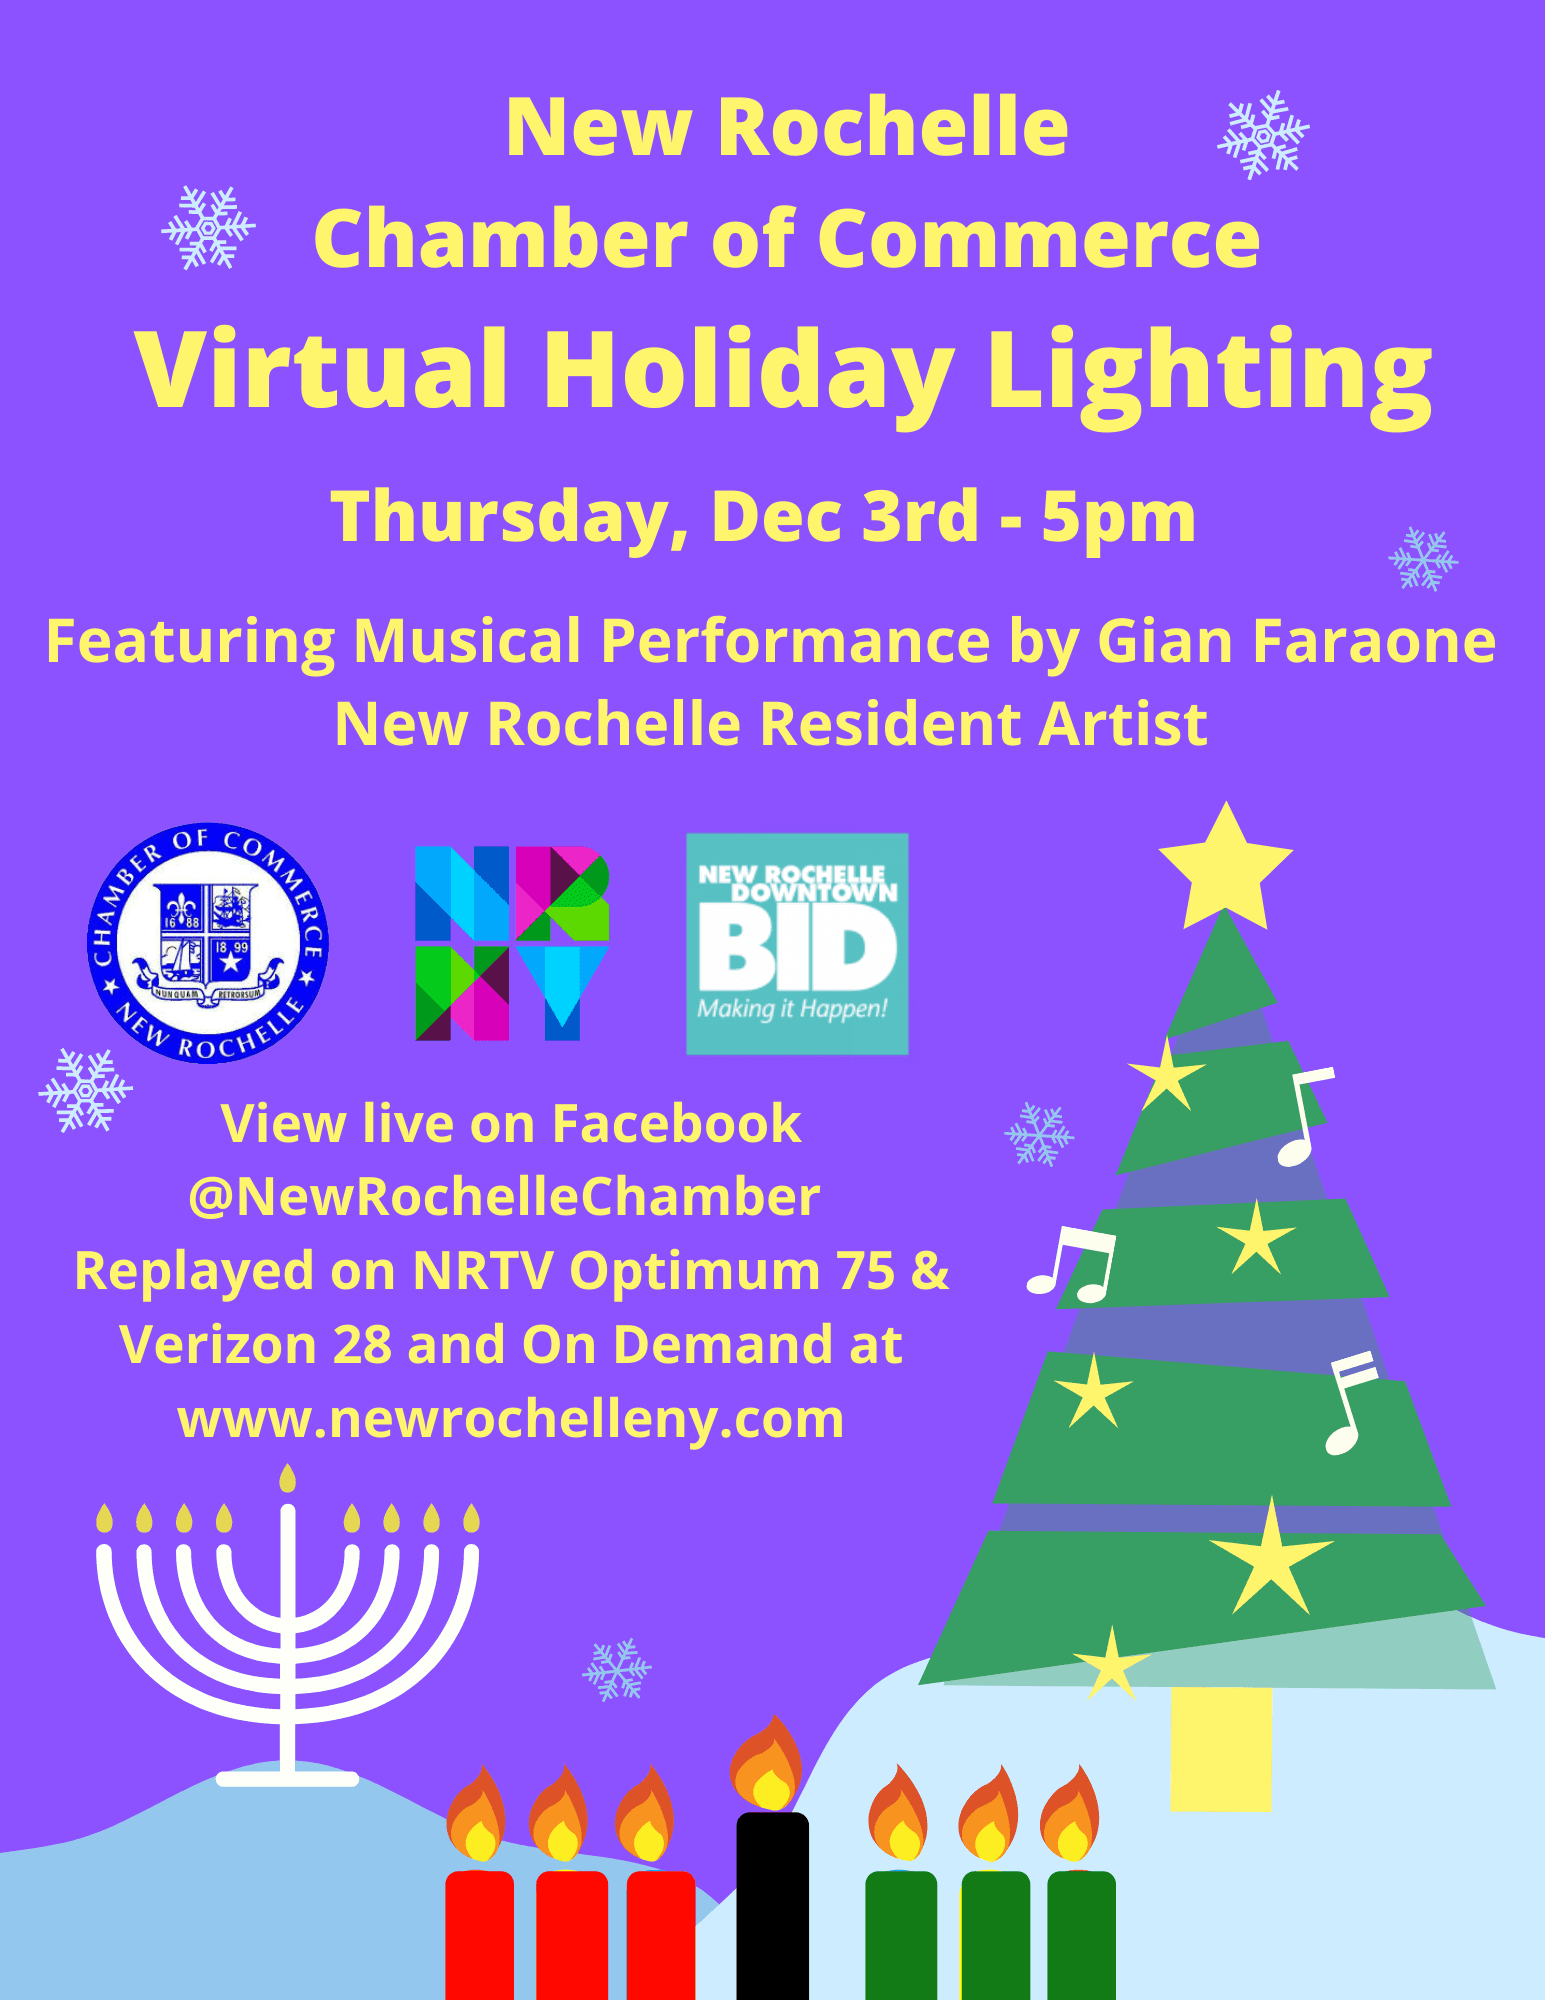 NR Holiday Lighting Flyer 12-3-2020